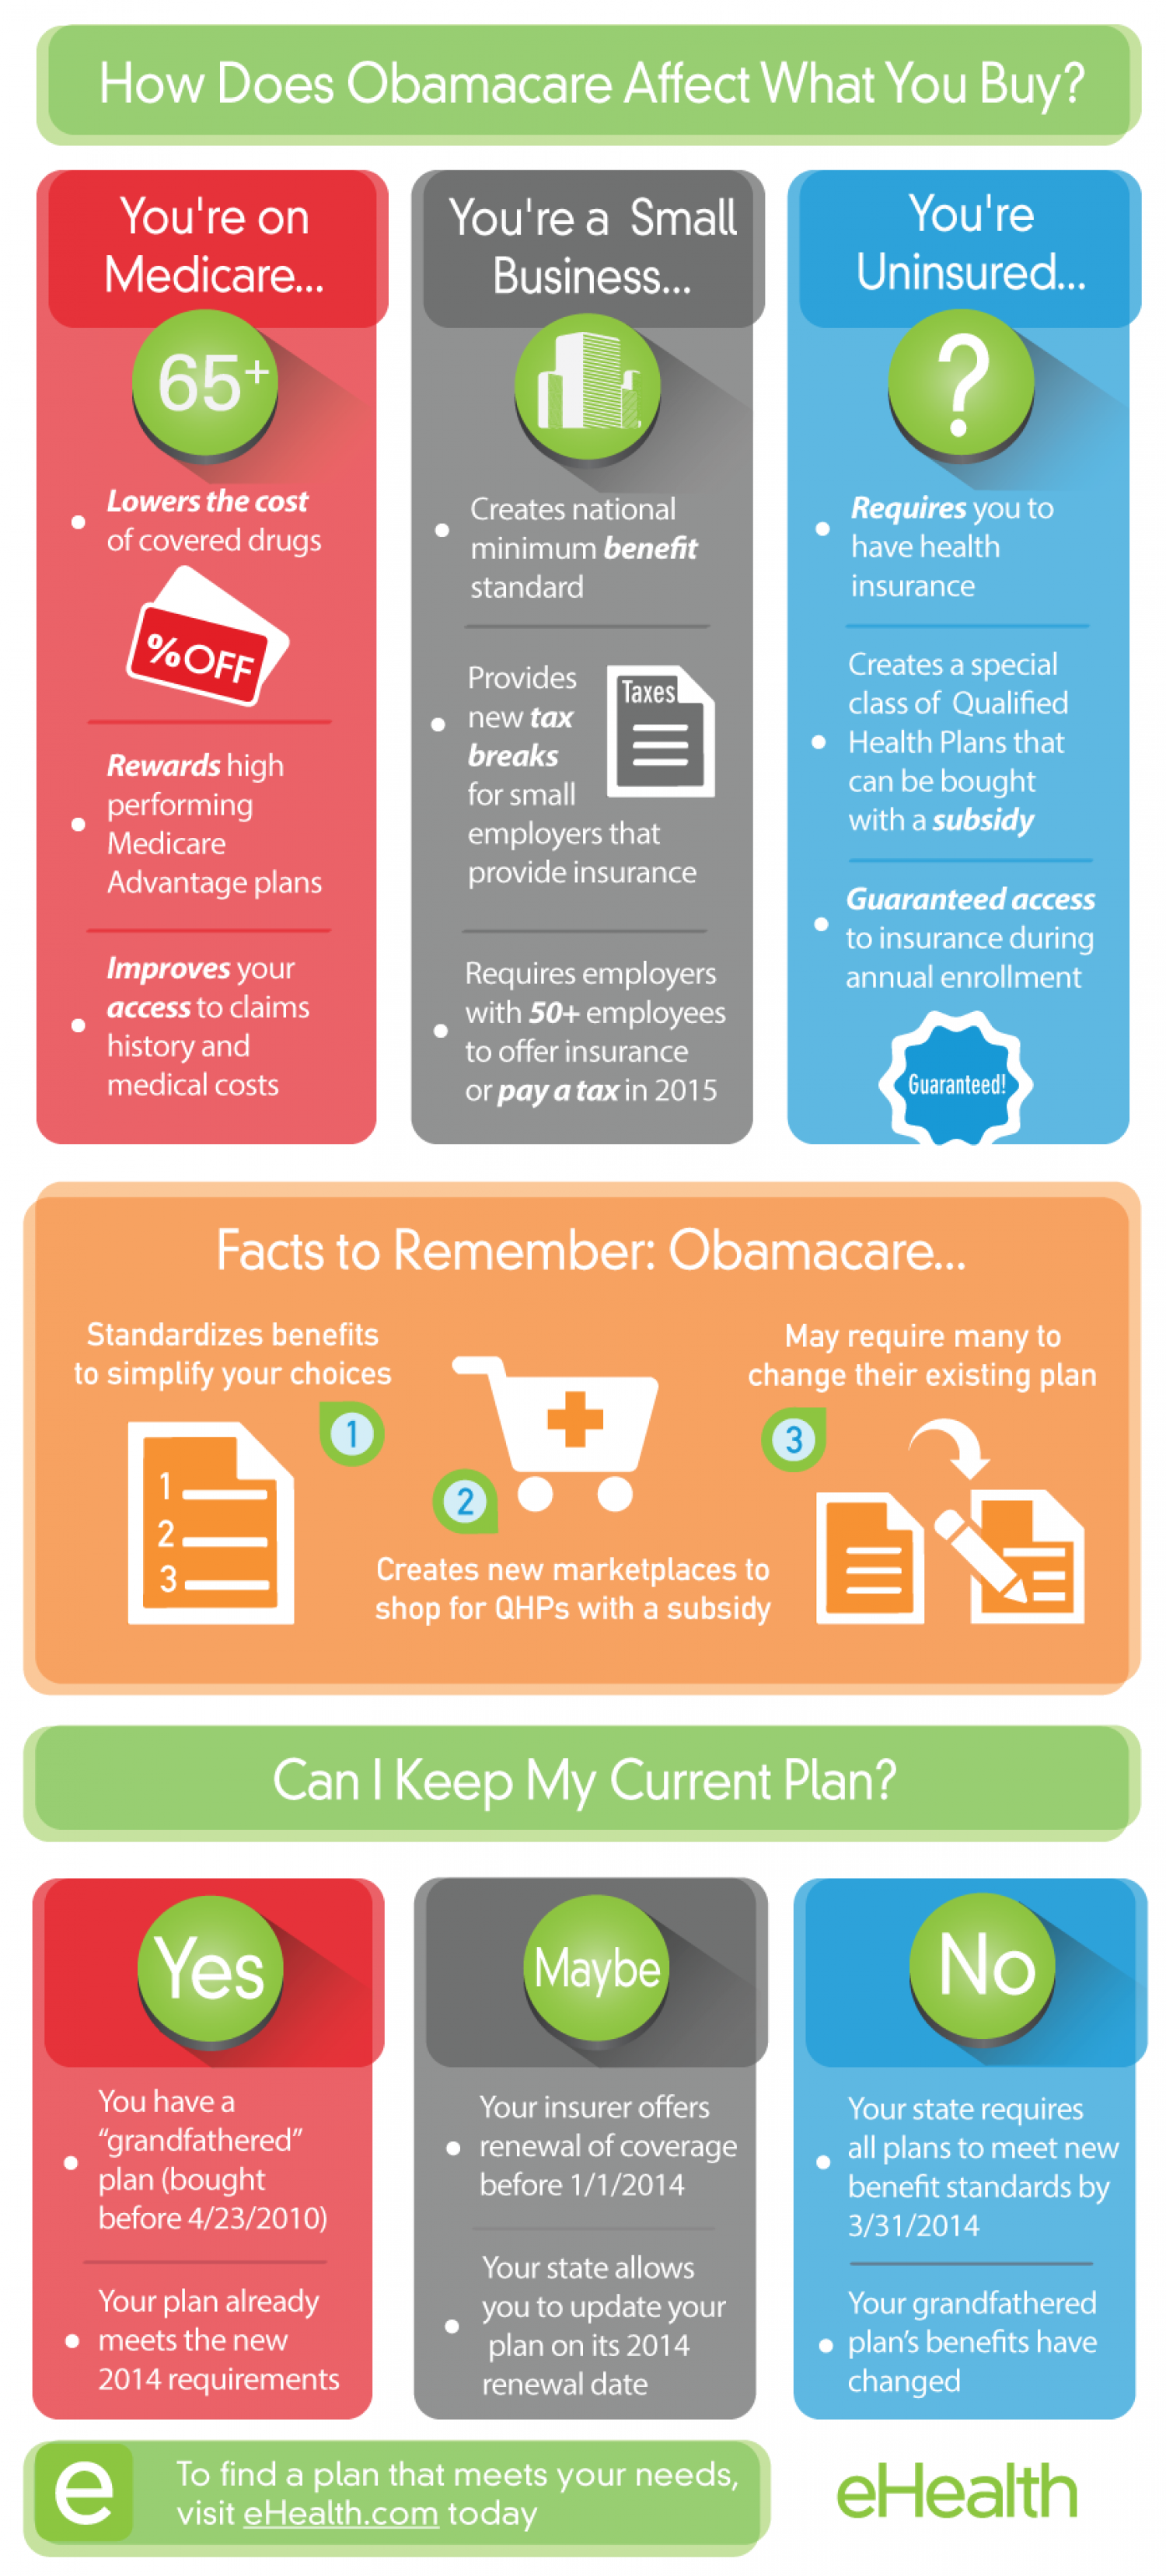 Affordable Care Act - Obamacare  Infographic